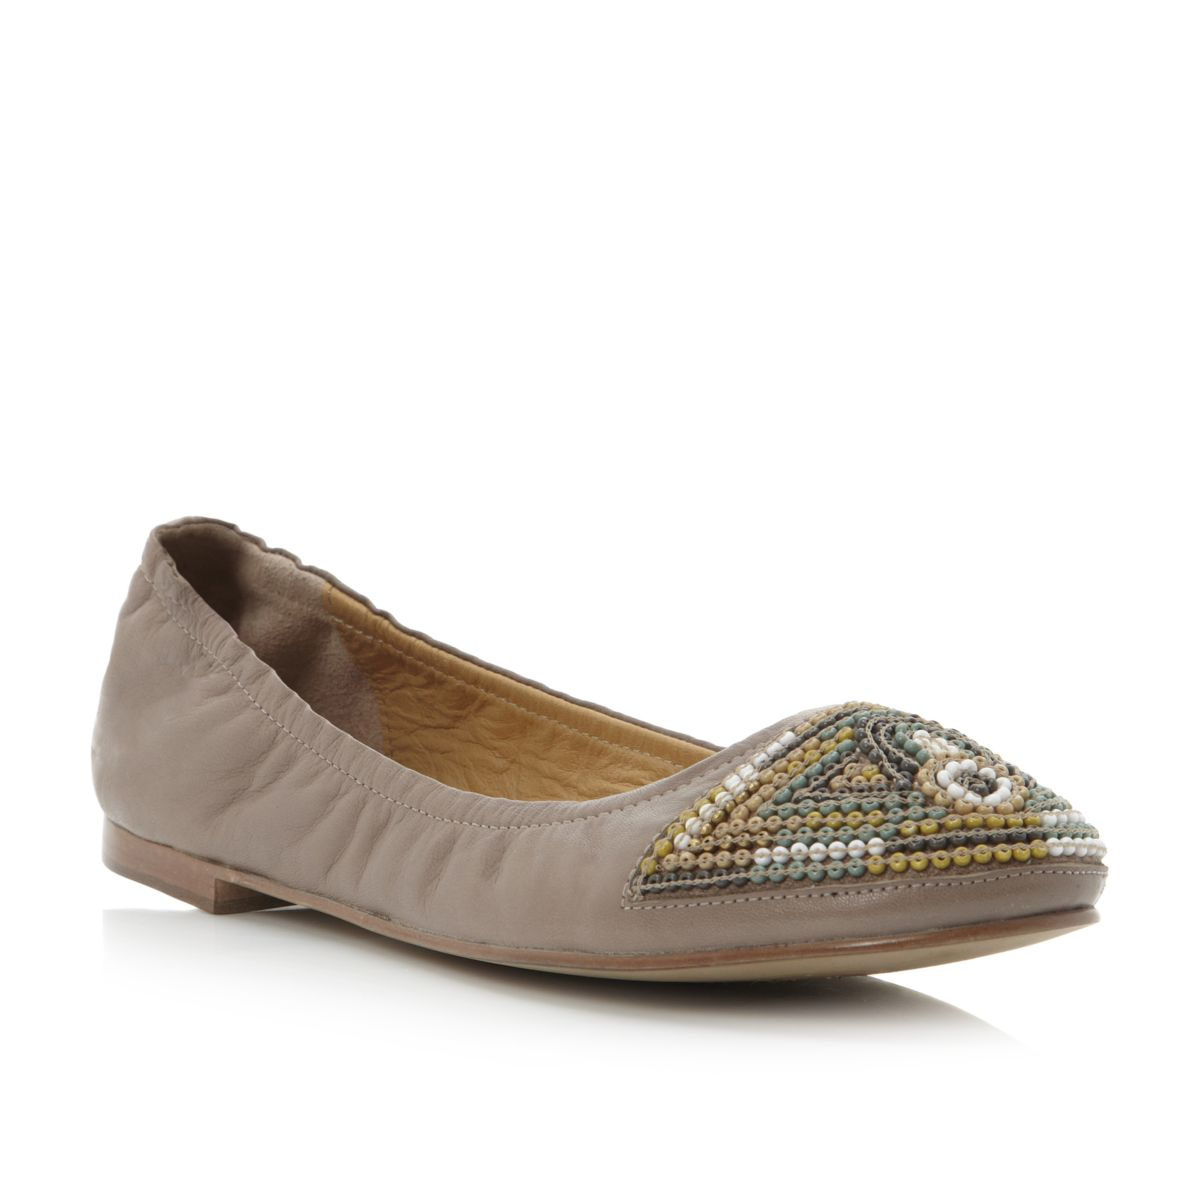 BERTIE-LADIES-MEADED-WOMENS-NUDE-BEADED-LEATHER-BALLERINA-FLATS-SHOES-SIZE-3-8